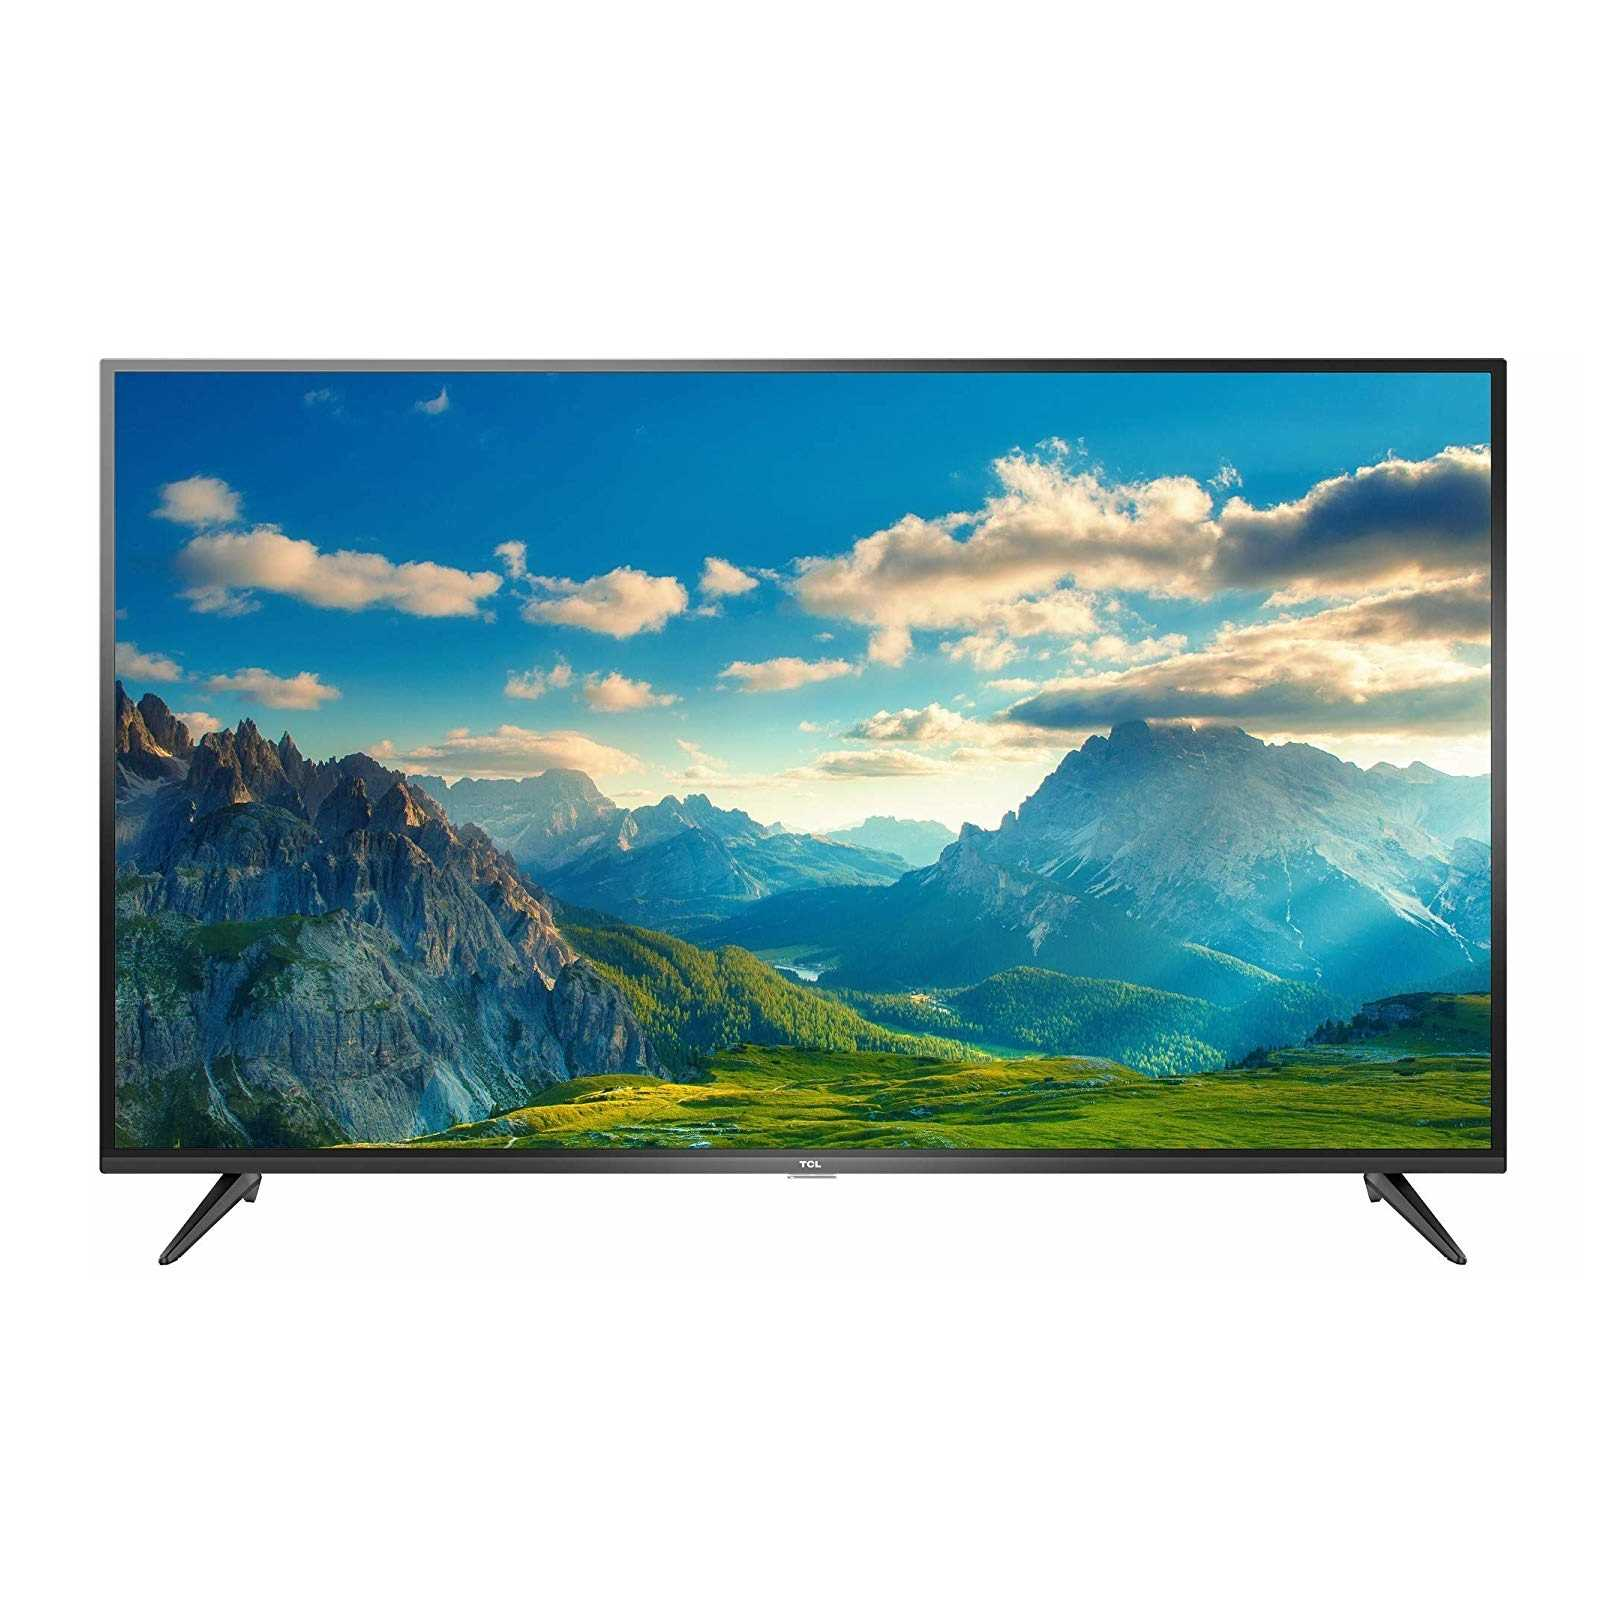 TCL 55P65US 55 Inch 4K Ultra HD Smart LED Television